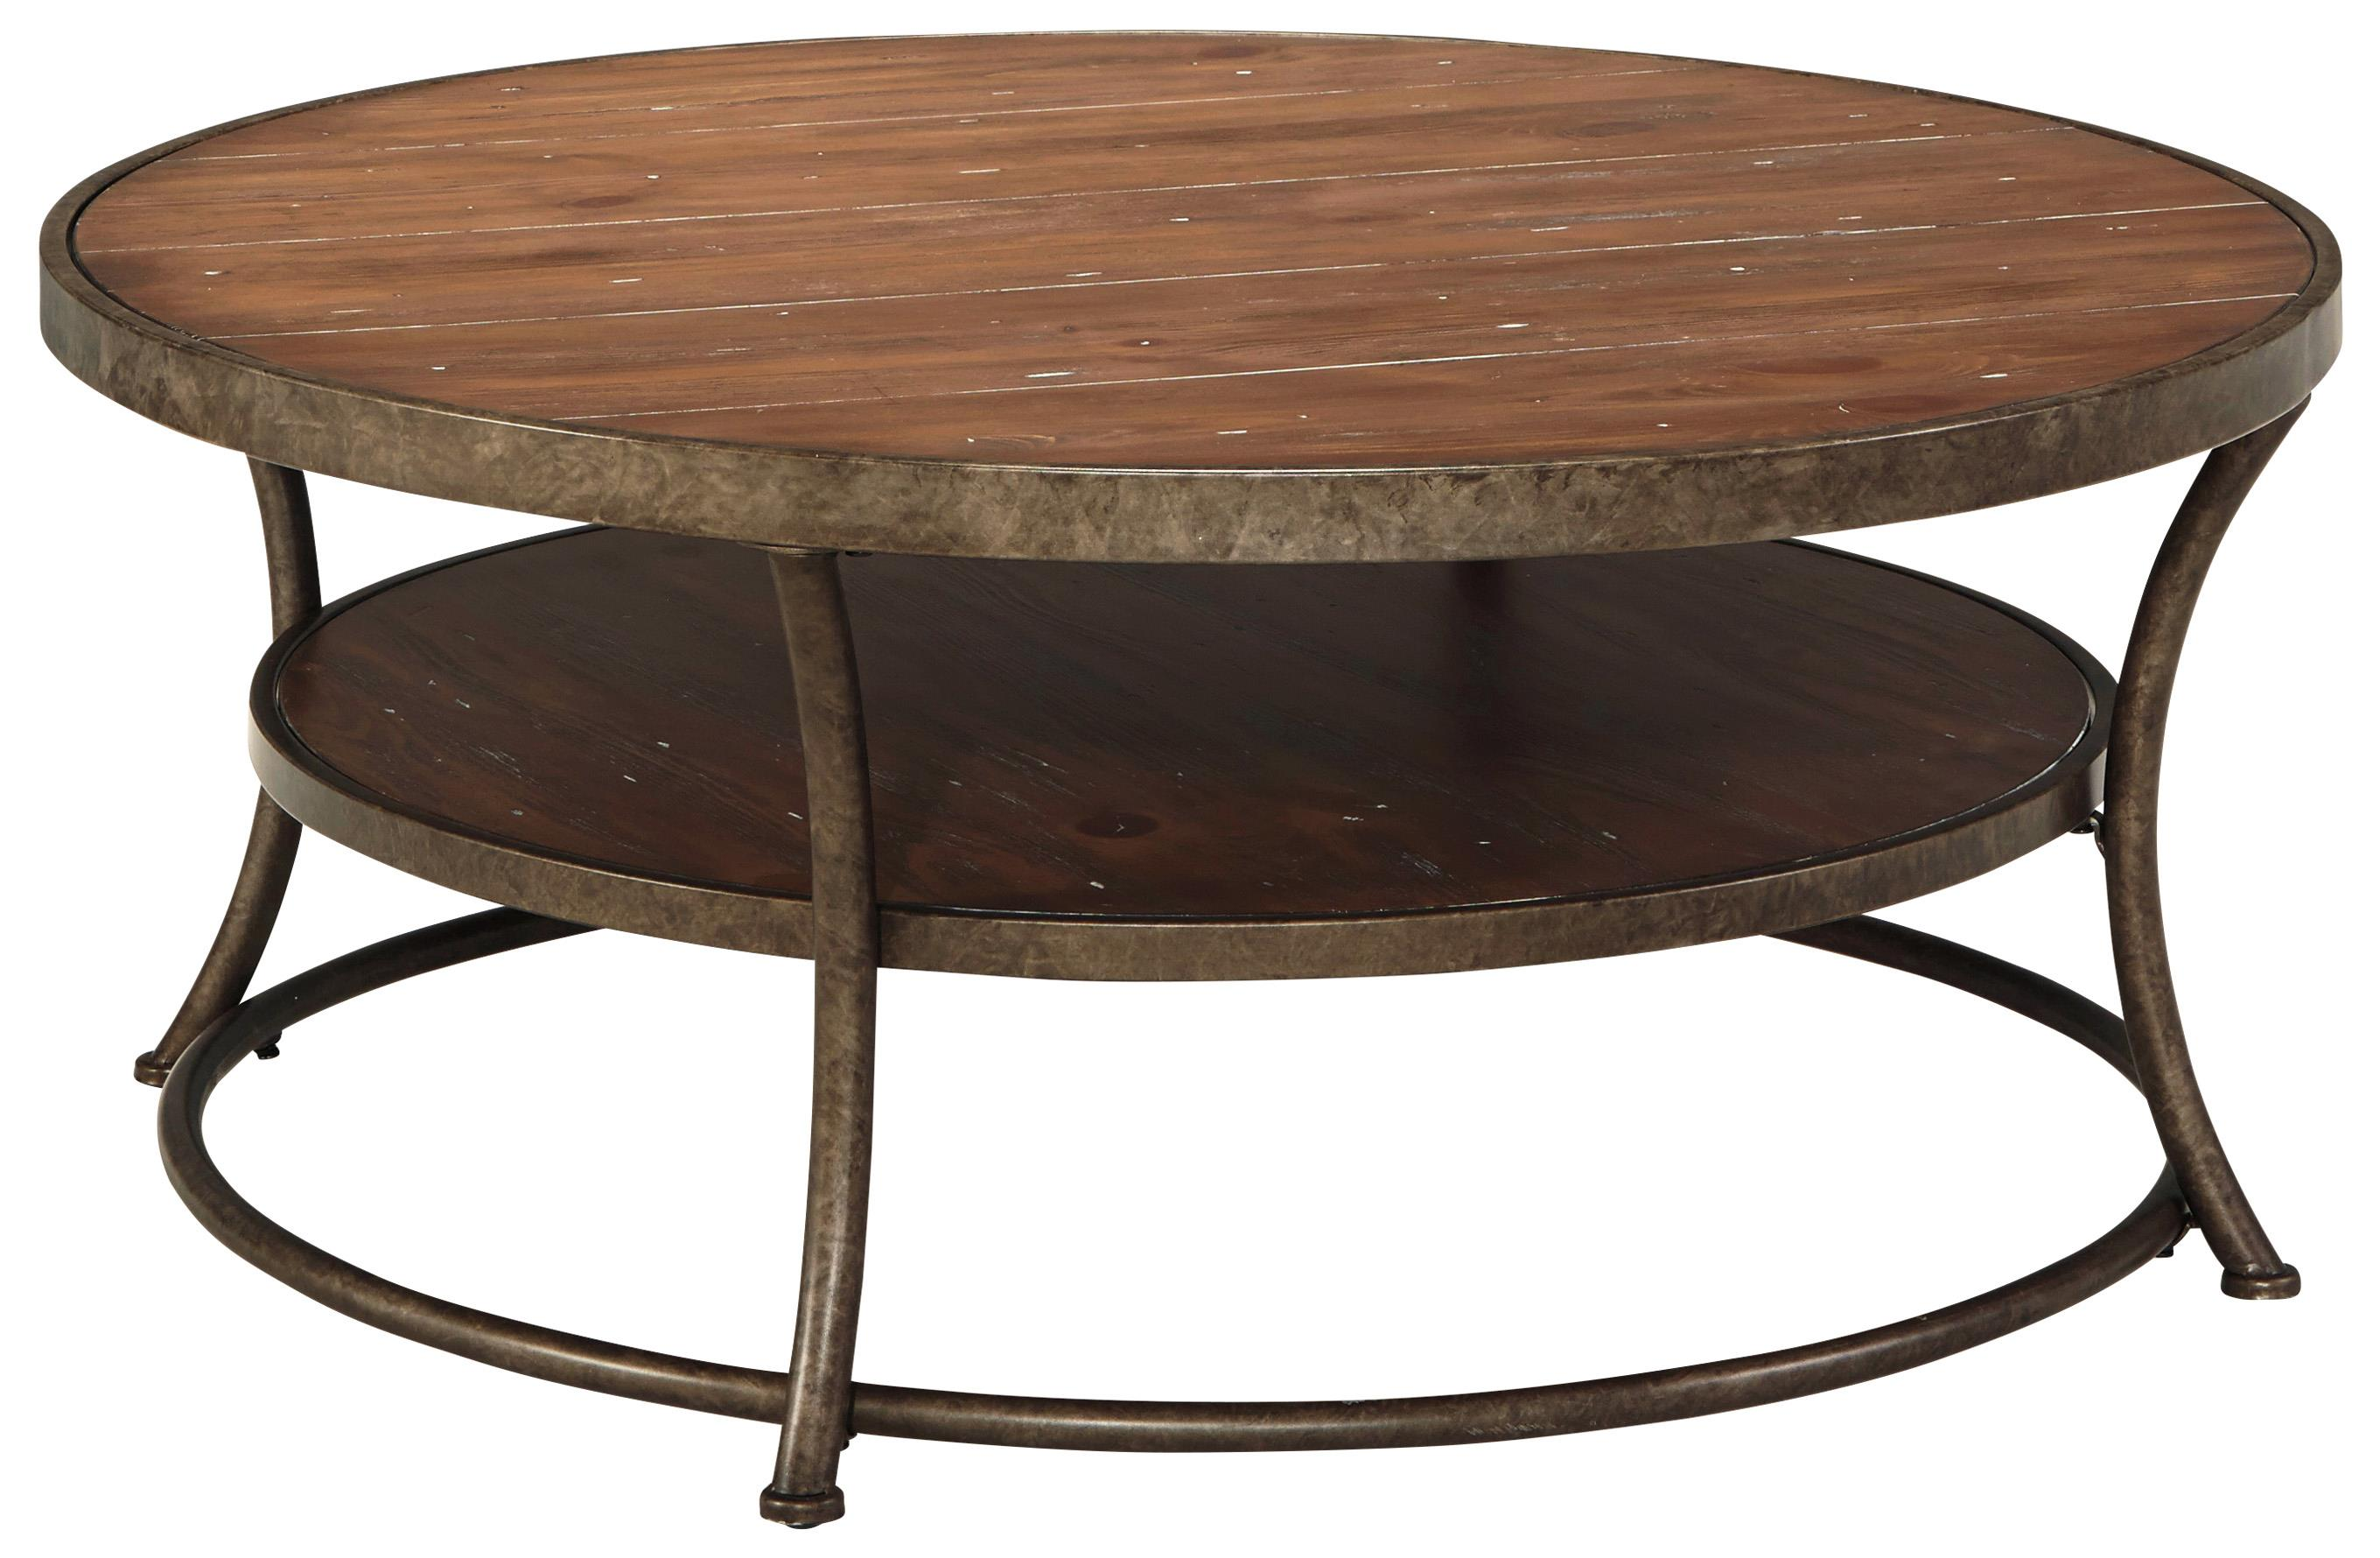 Rustic metal frame round cocktail table with distressed pine top shelf by signature design by Round rustic coffee table